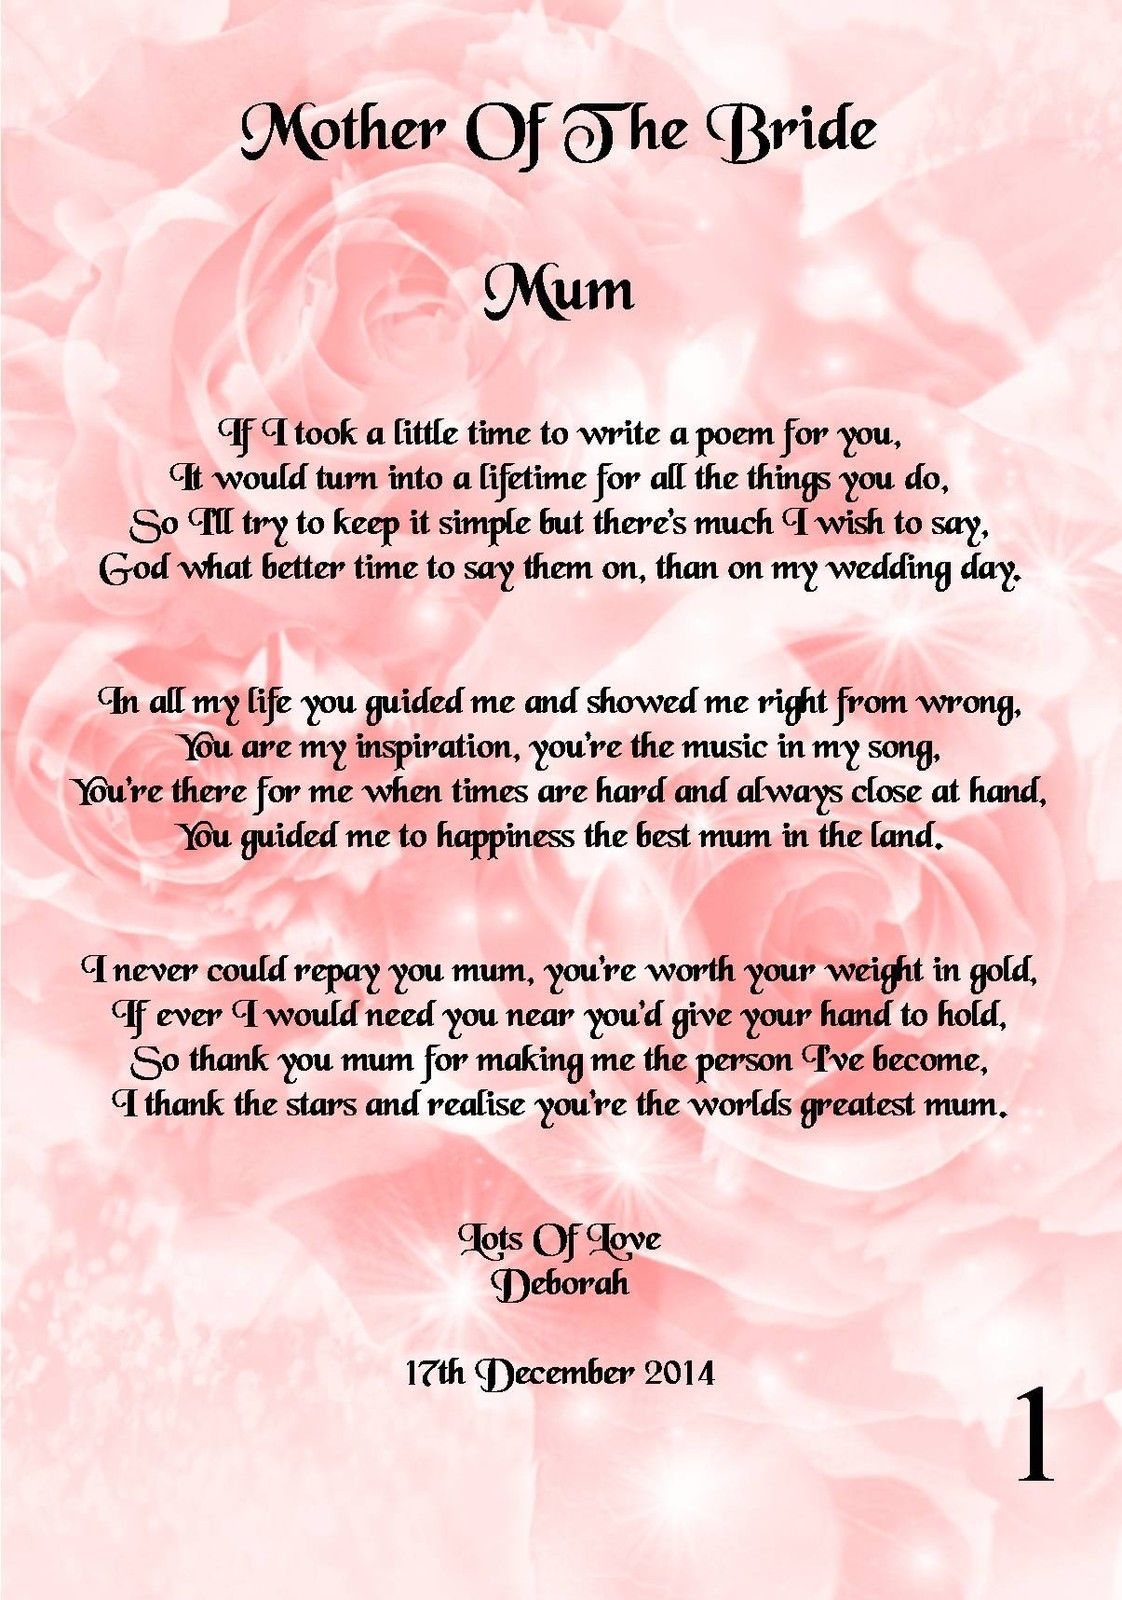 2 49 Gbp Wedding Day Thank You Gift Mother Of The Bride Poem A5 Photo Ebay Home Garden Wedding Gifts For Parents Thank You Speech Wedding Wedding Poems